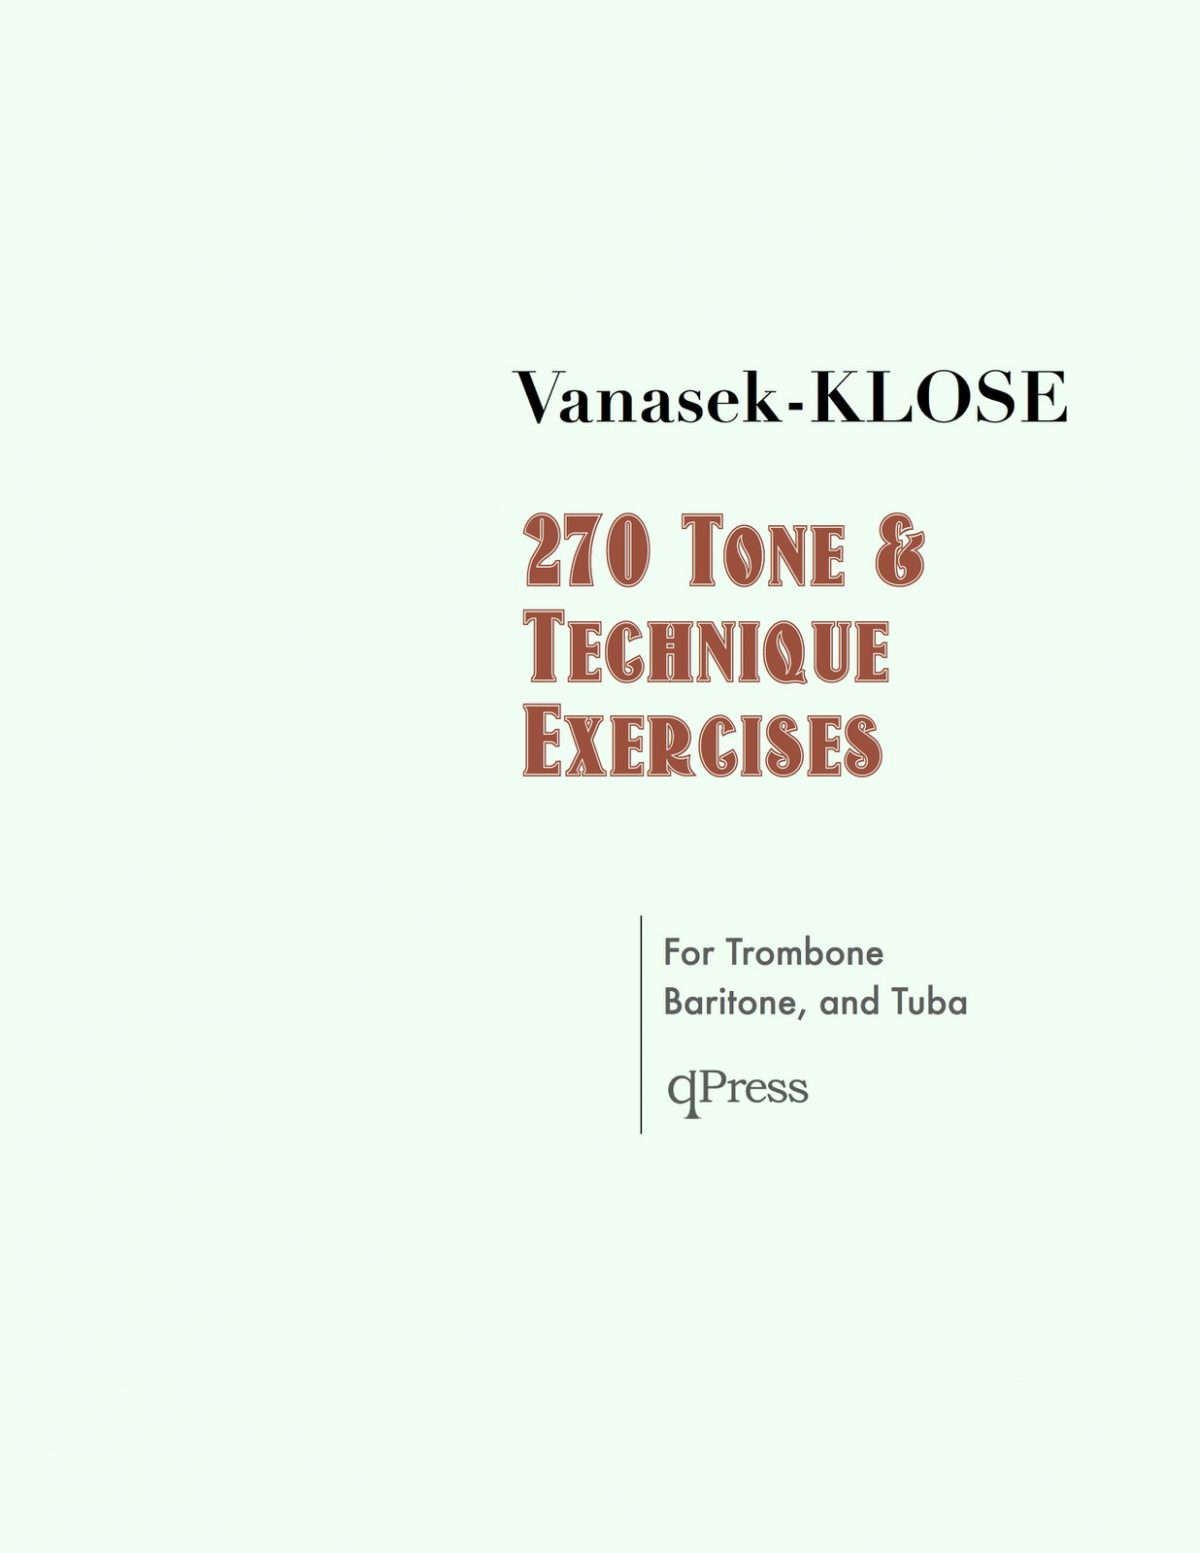 Klose-Vanasek, 270 Tone and Technique Exercises for Trombone, Baritone, or Tuba